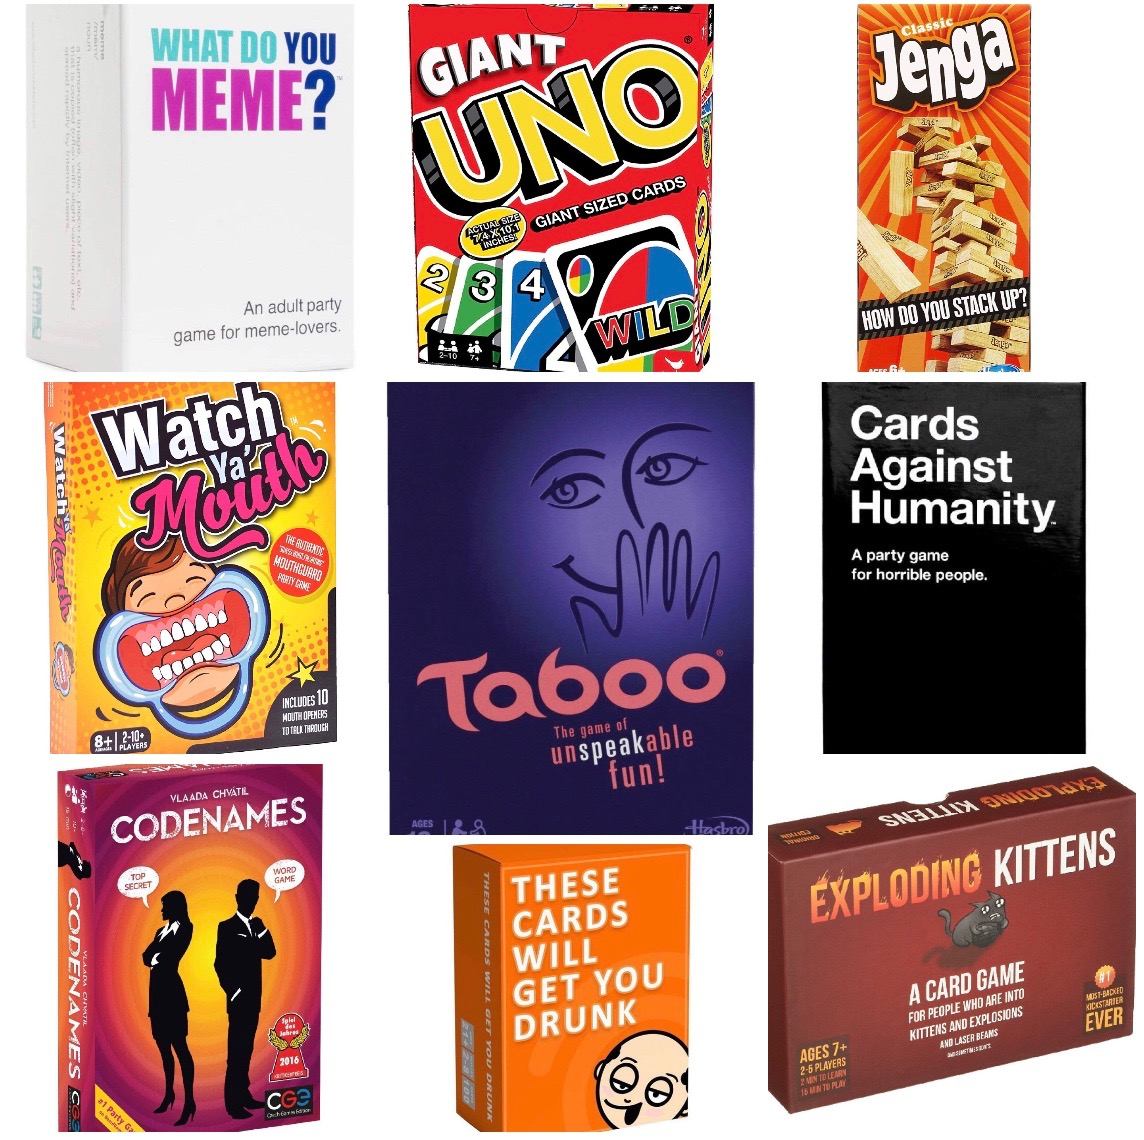 Rent any 3 Board Games (from our List) for 2 Days for ONLY $150.00 (RENT)